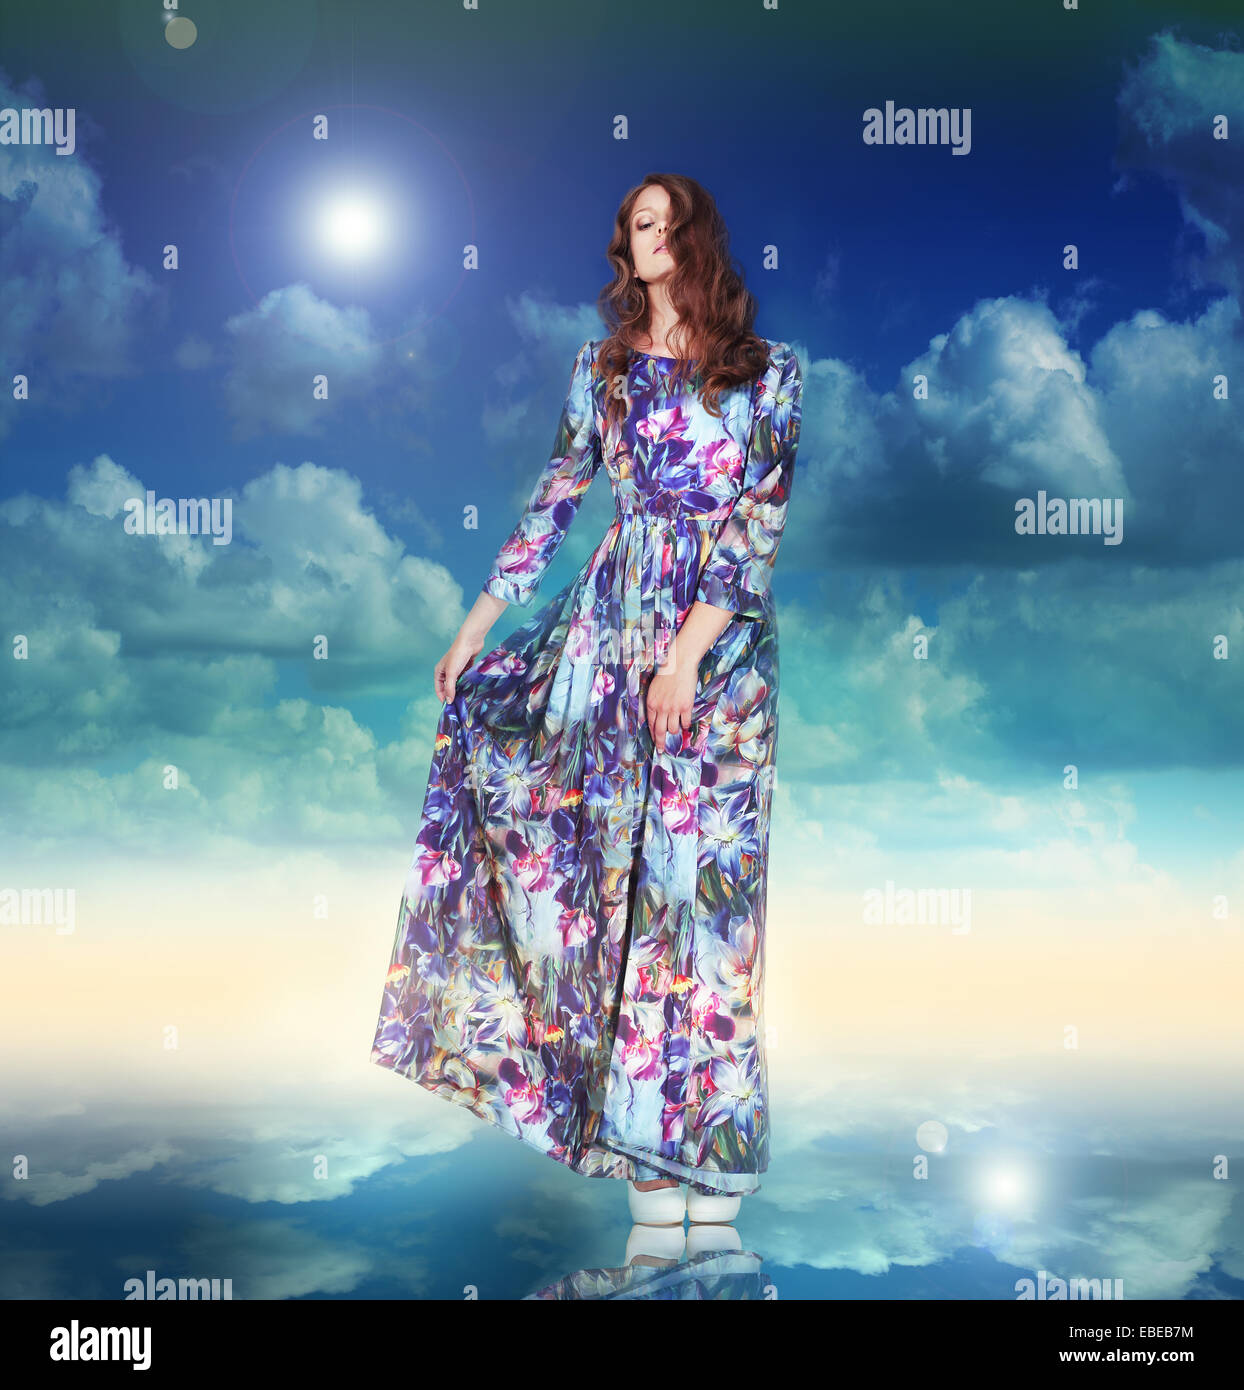 Imagination. Woman in Light Dress is Hovering among Clouds - Stock Image